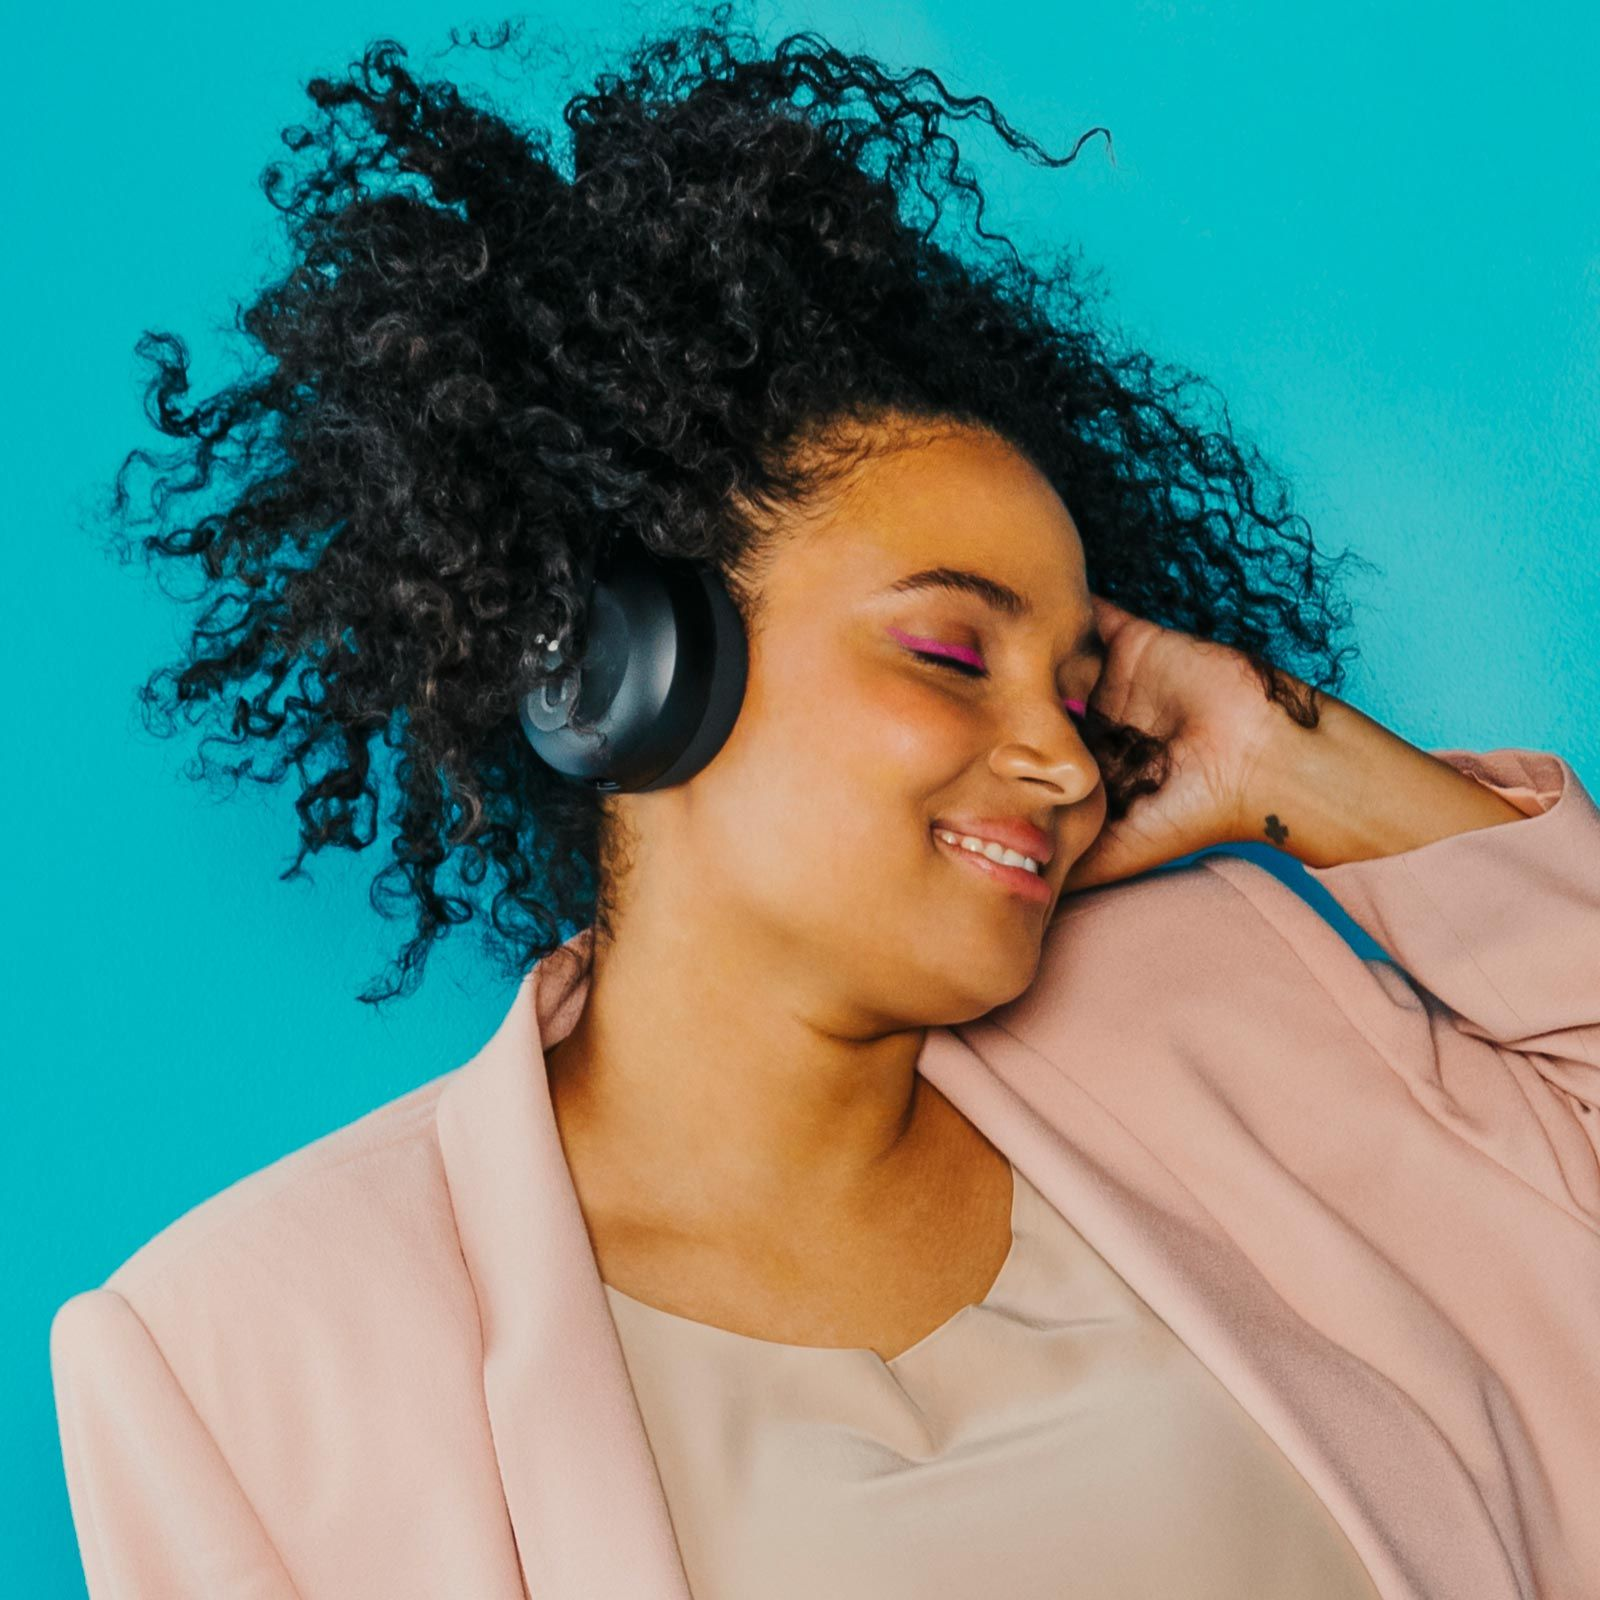 Person with eyes closed with NURAPHONE headphones on listening to sound